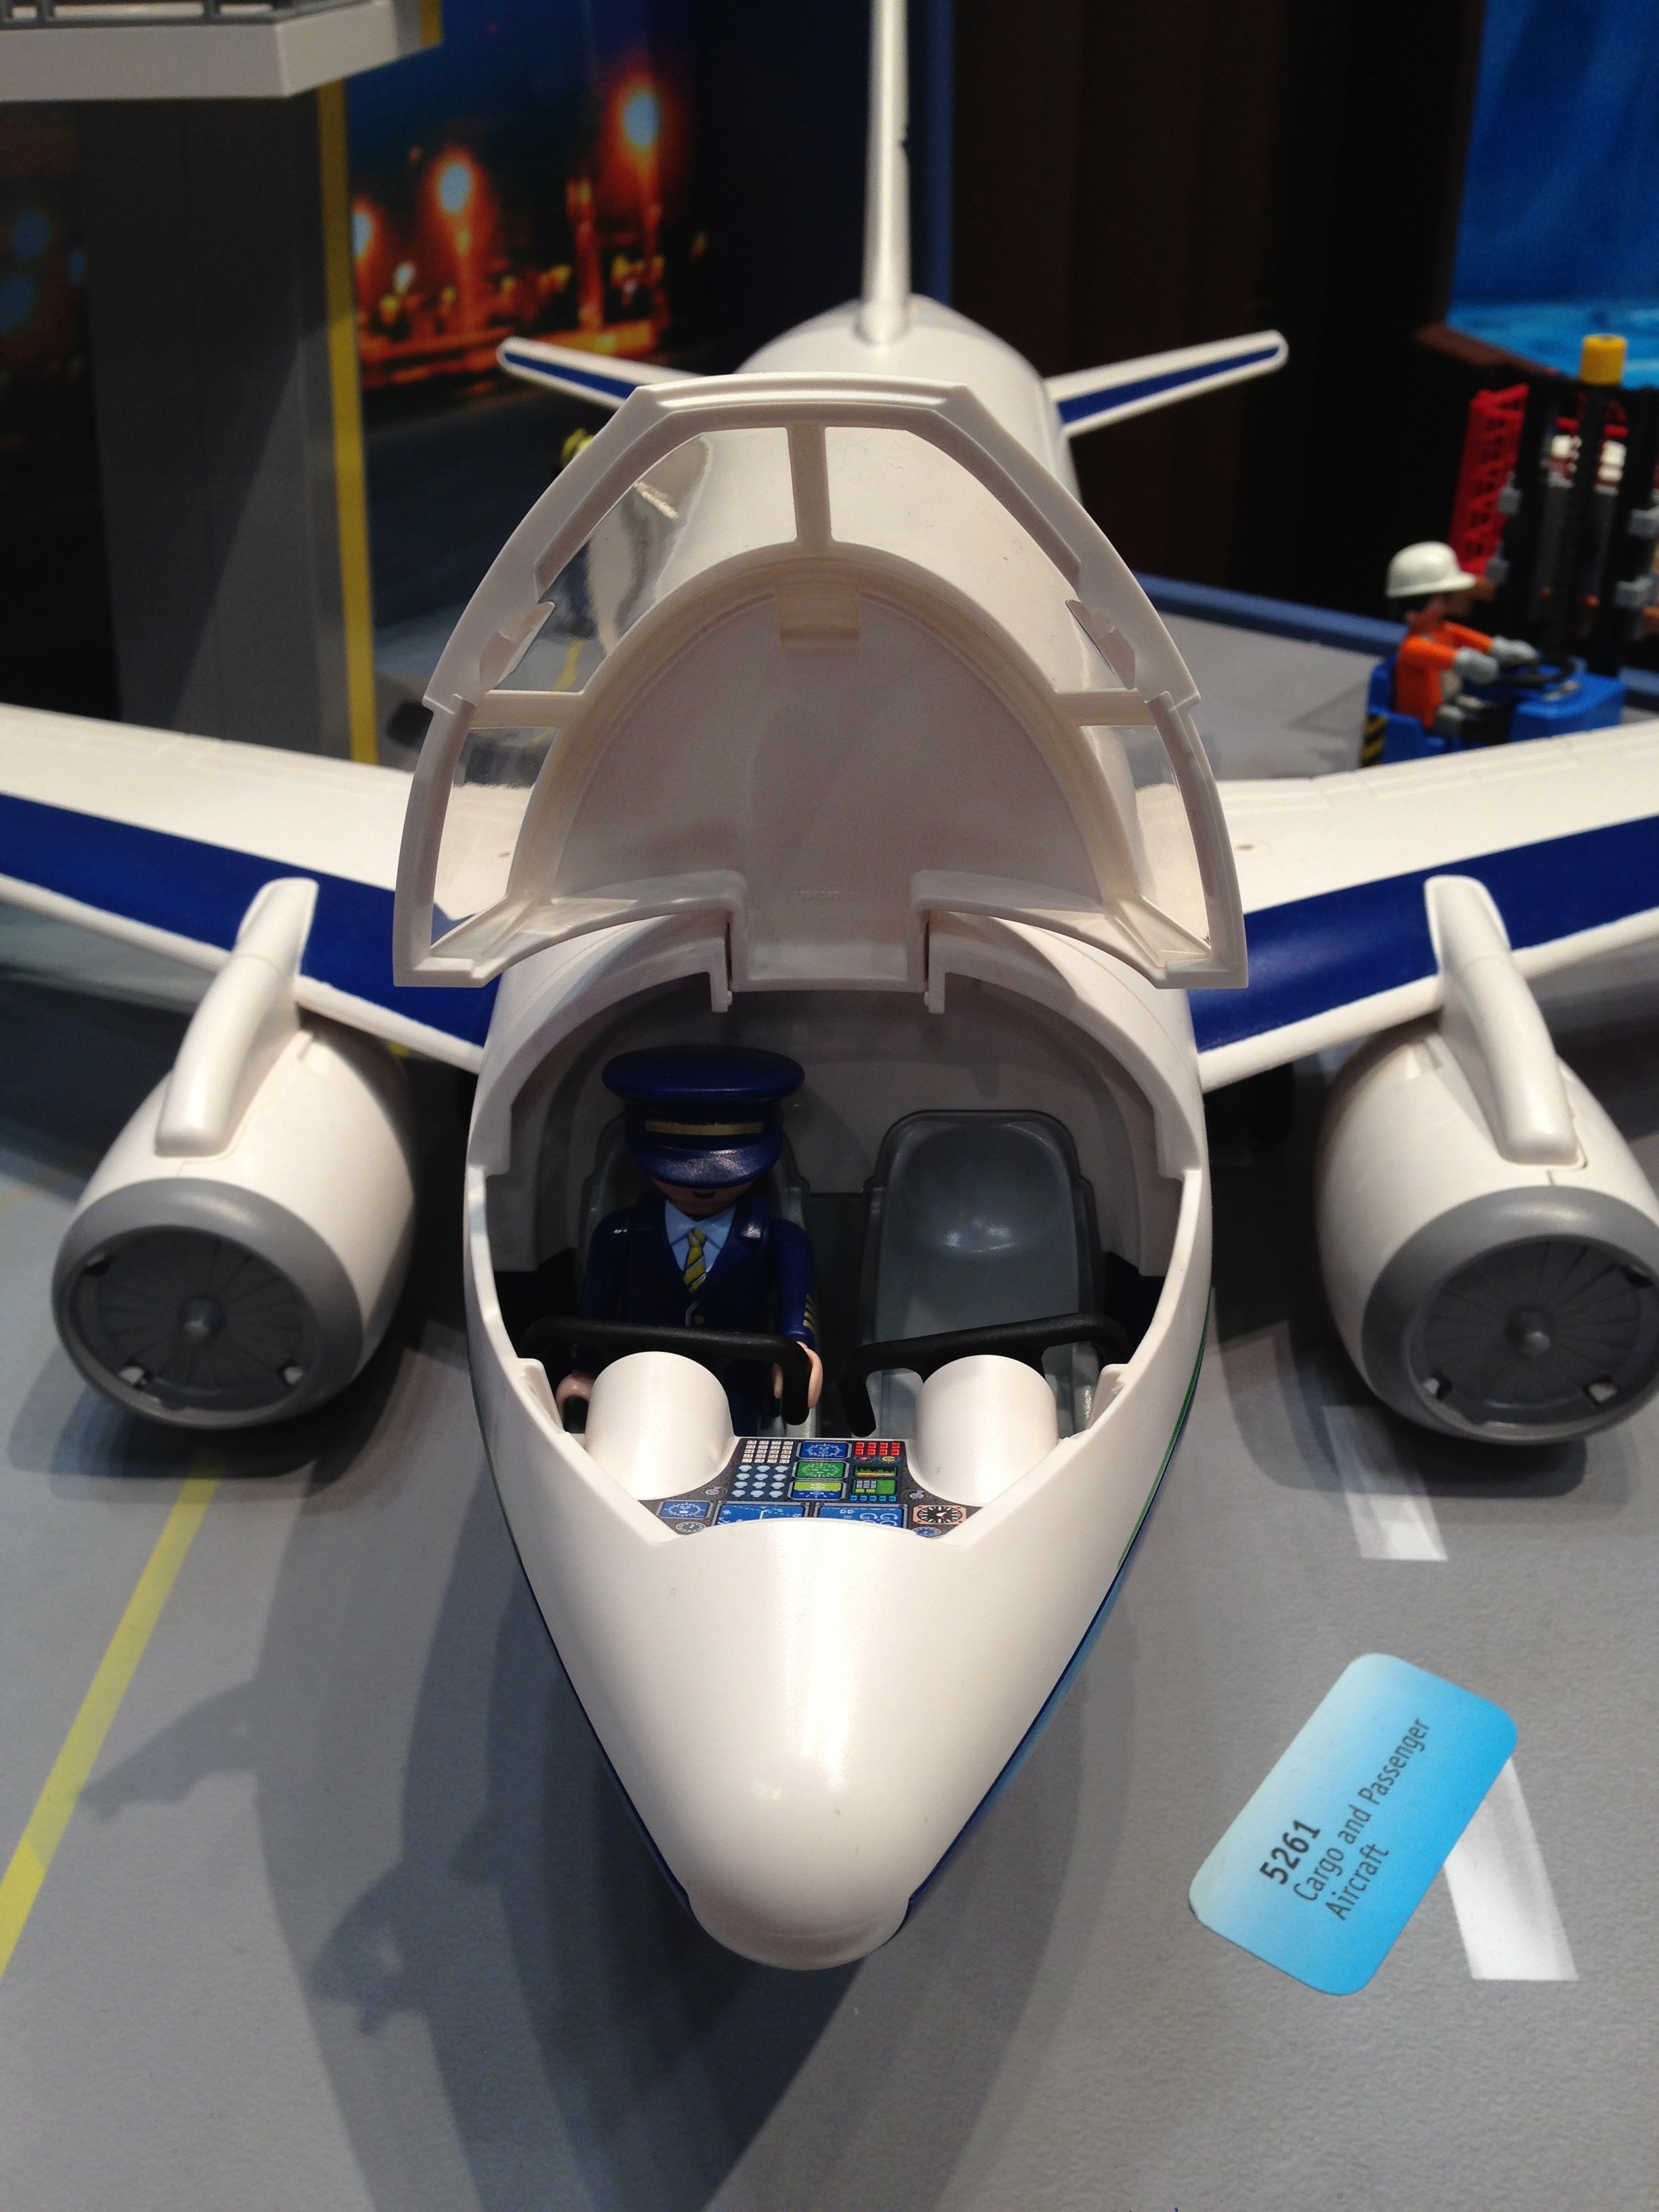 It's wheels up on the Playmobil jet — the cockpit and main cabin both open.